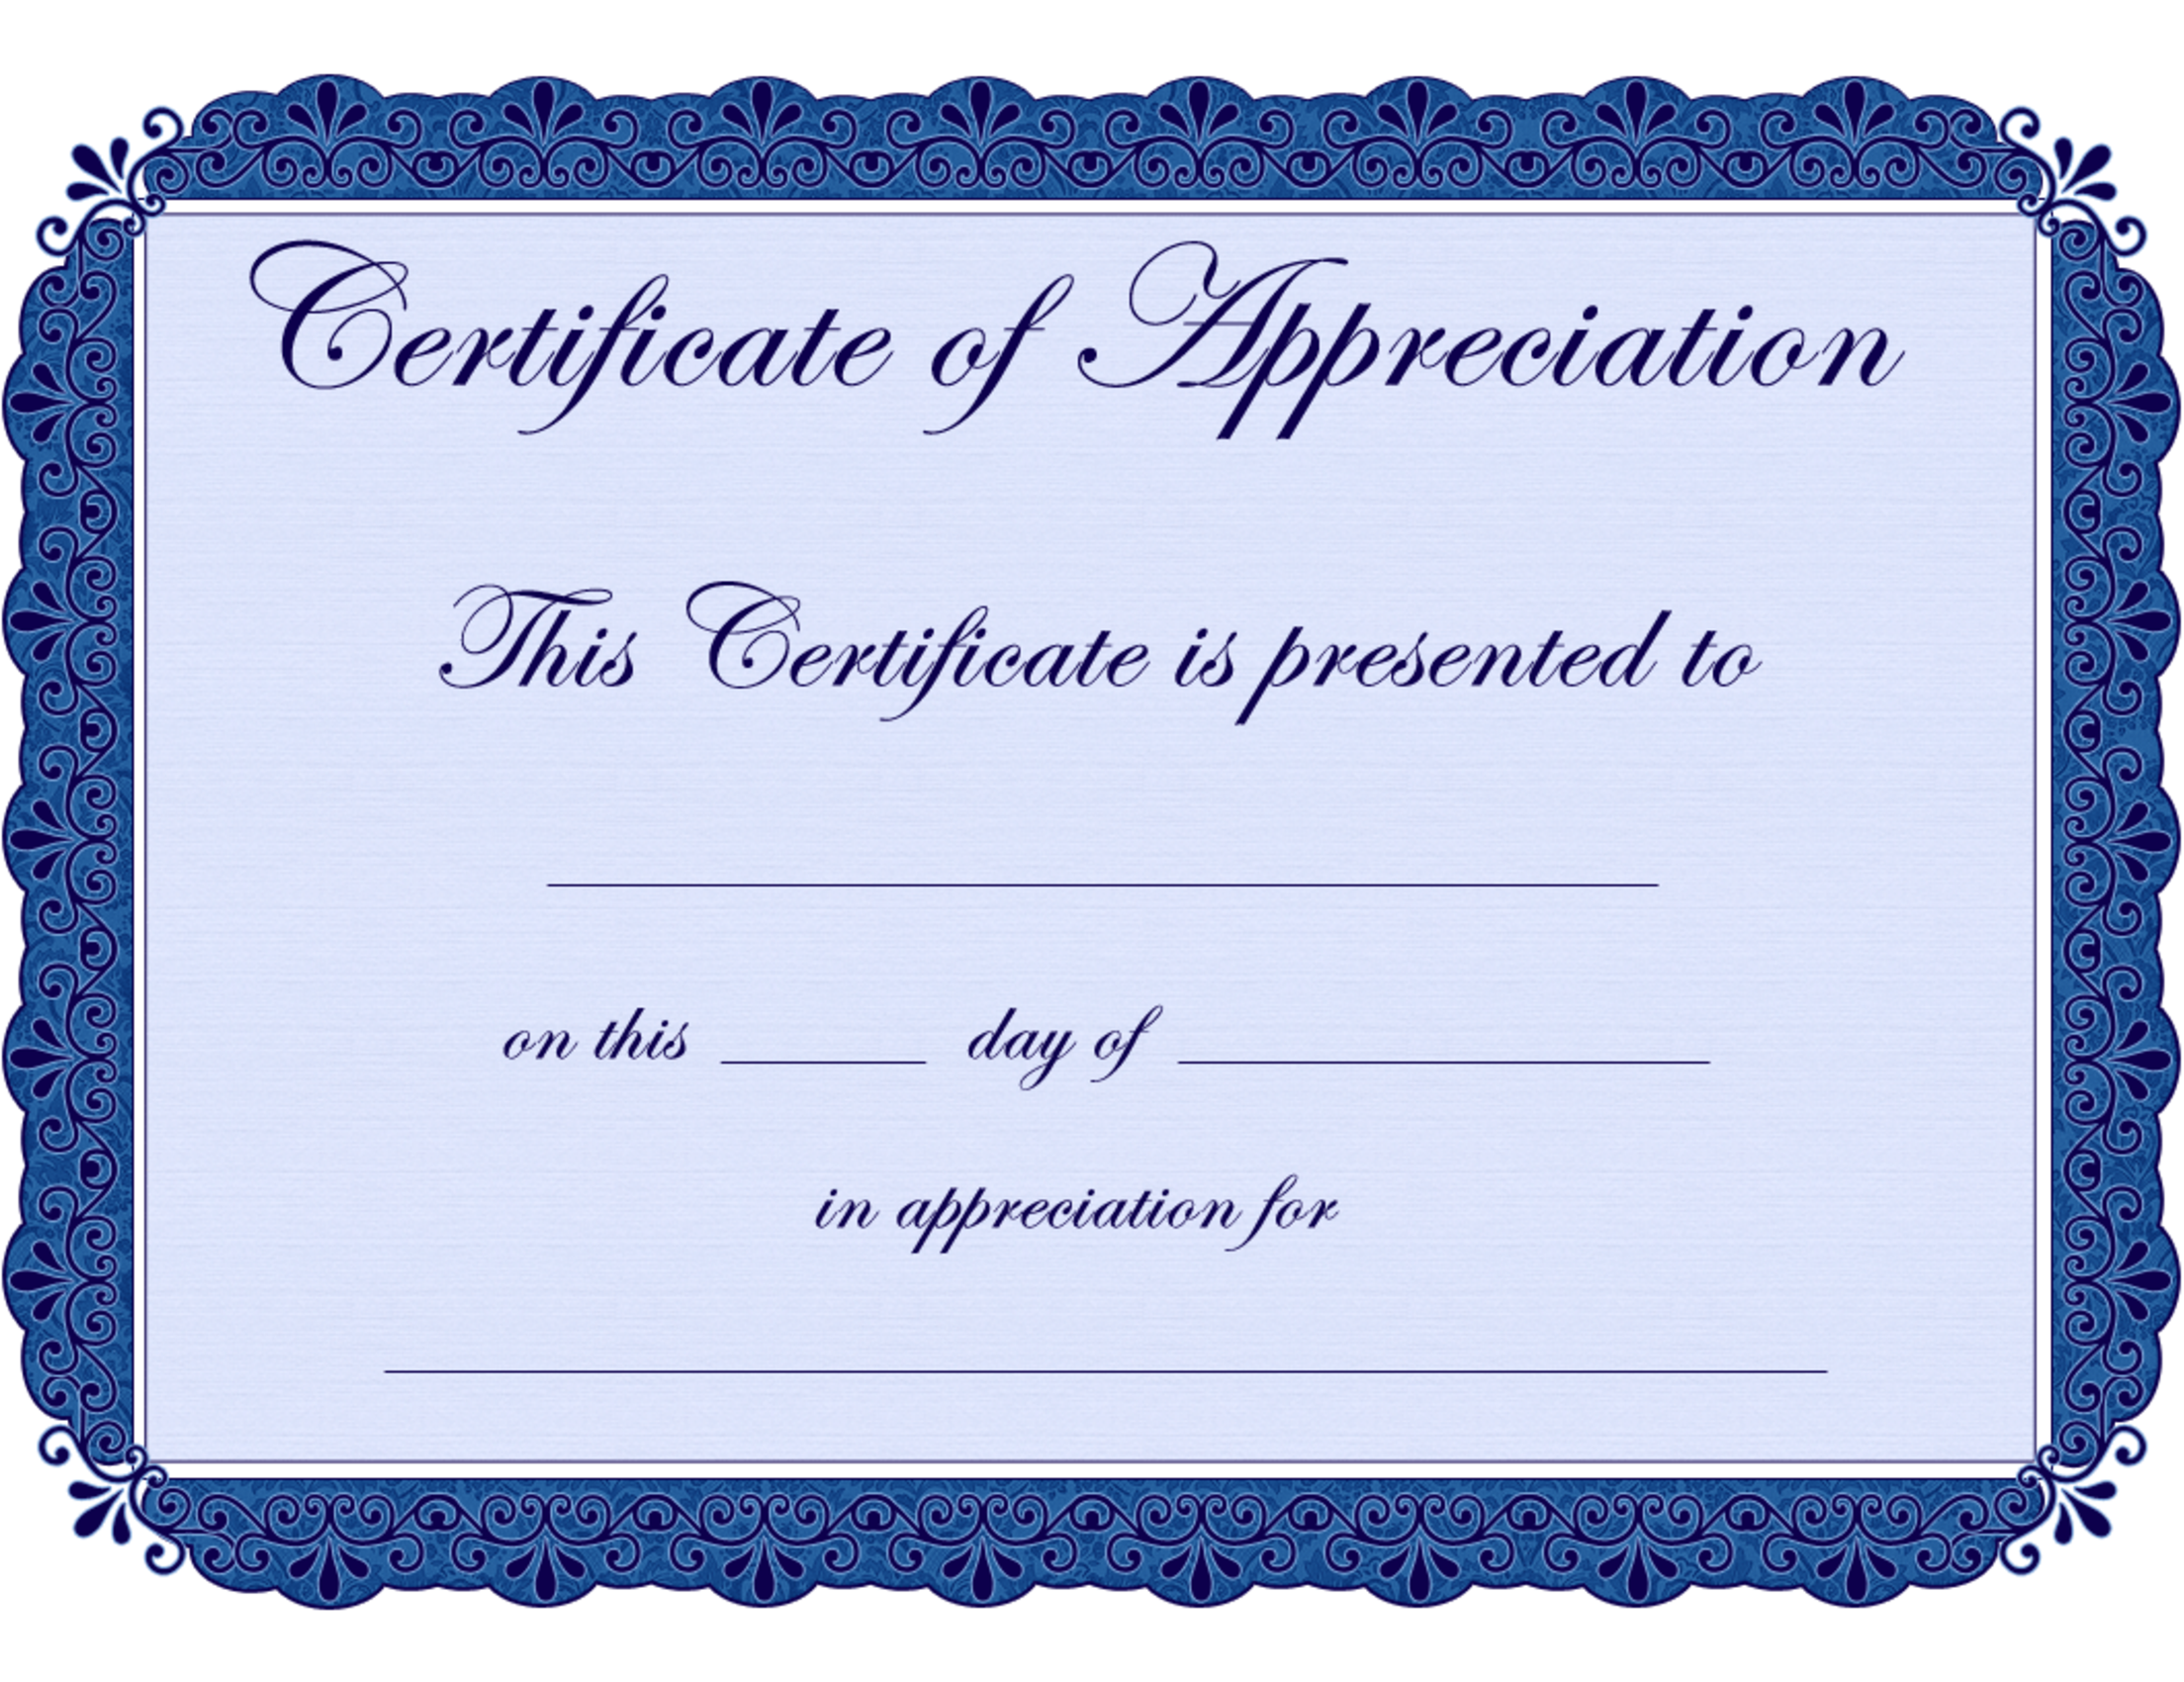 best ideas about certificate templates gift printable certificate of appreciation certificates printable certificates certificate of appreciation certificate templates